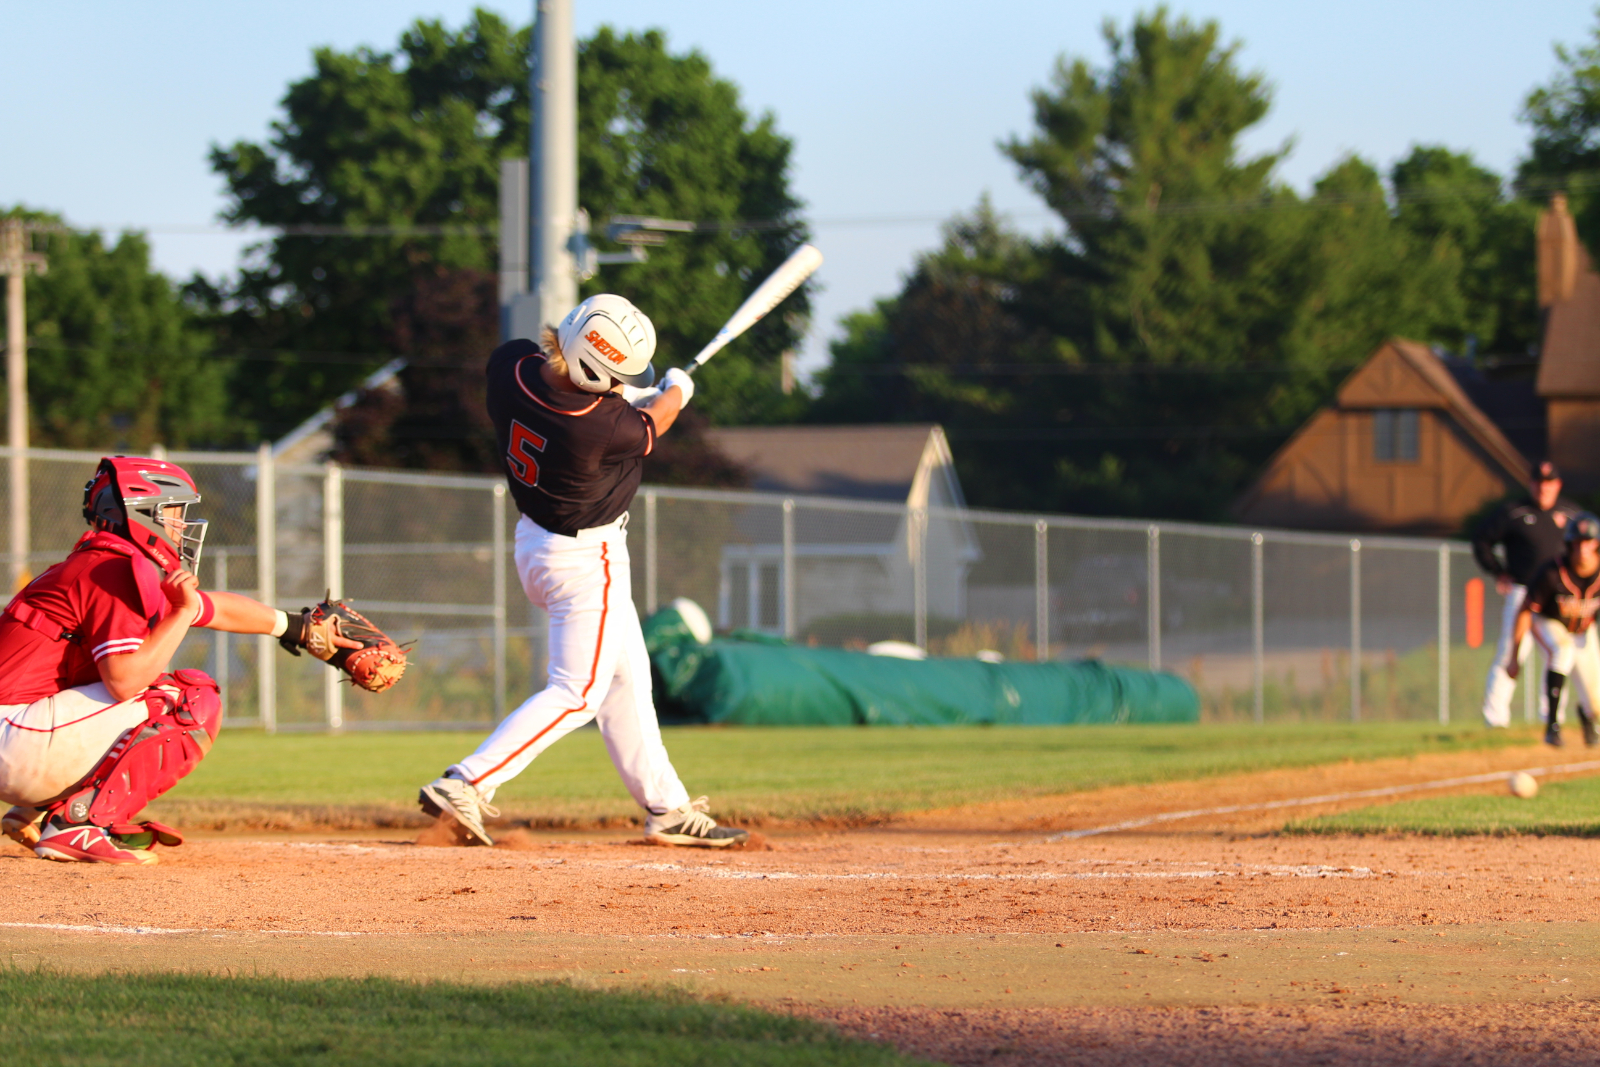 Valley Baseball vs. Ottumwa_73